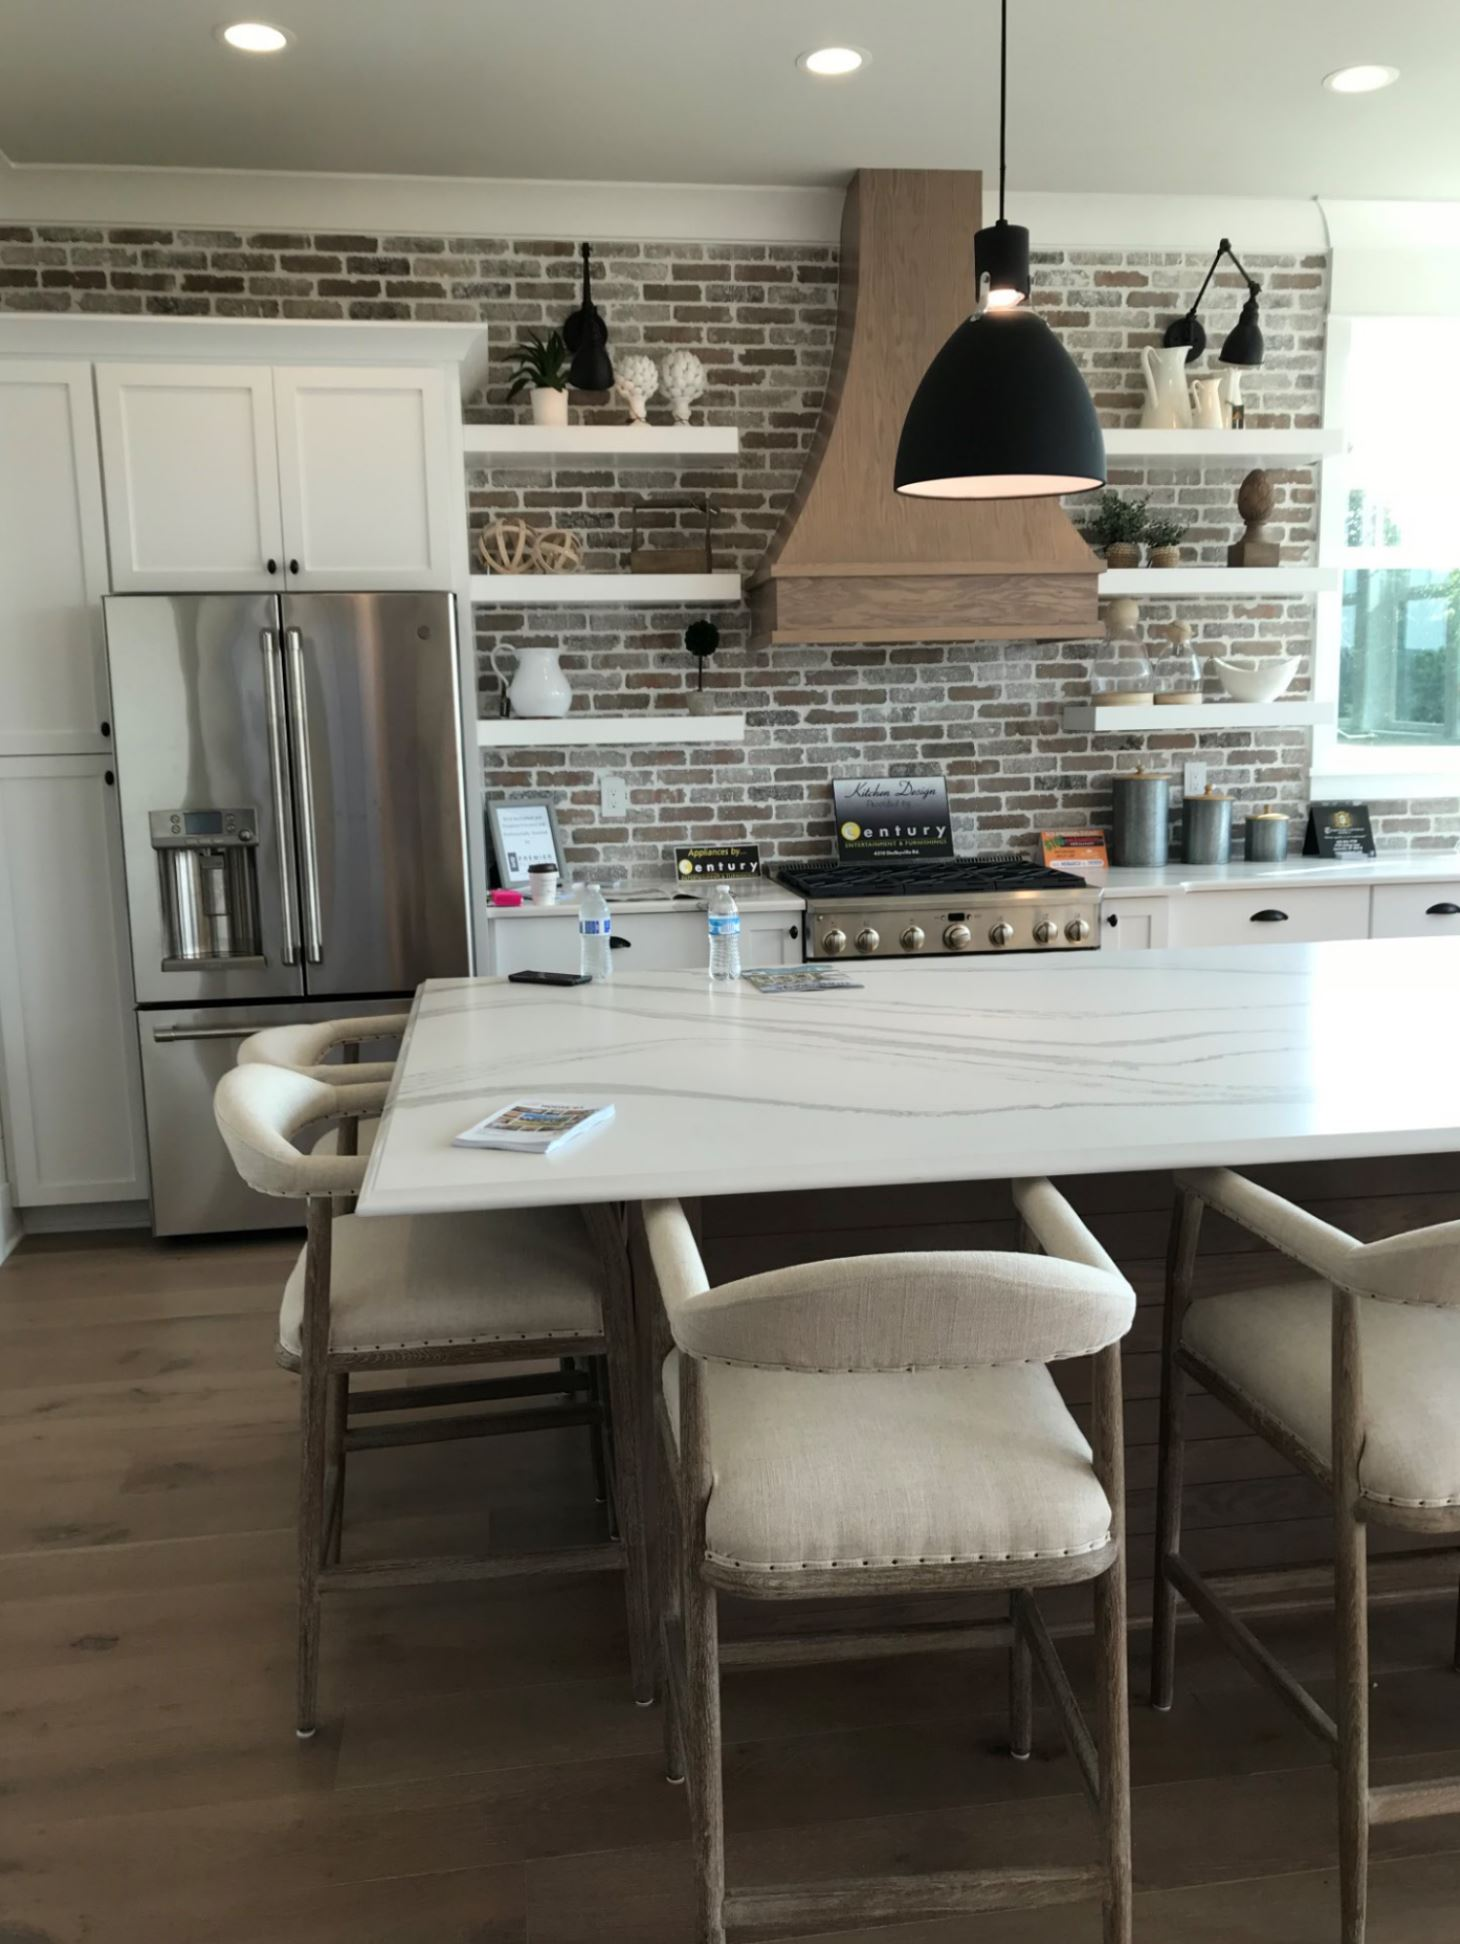 2 kitchen trends 2018 lexington kentucky.JPG